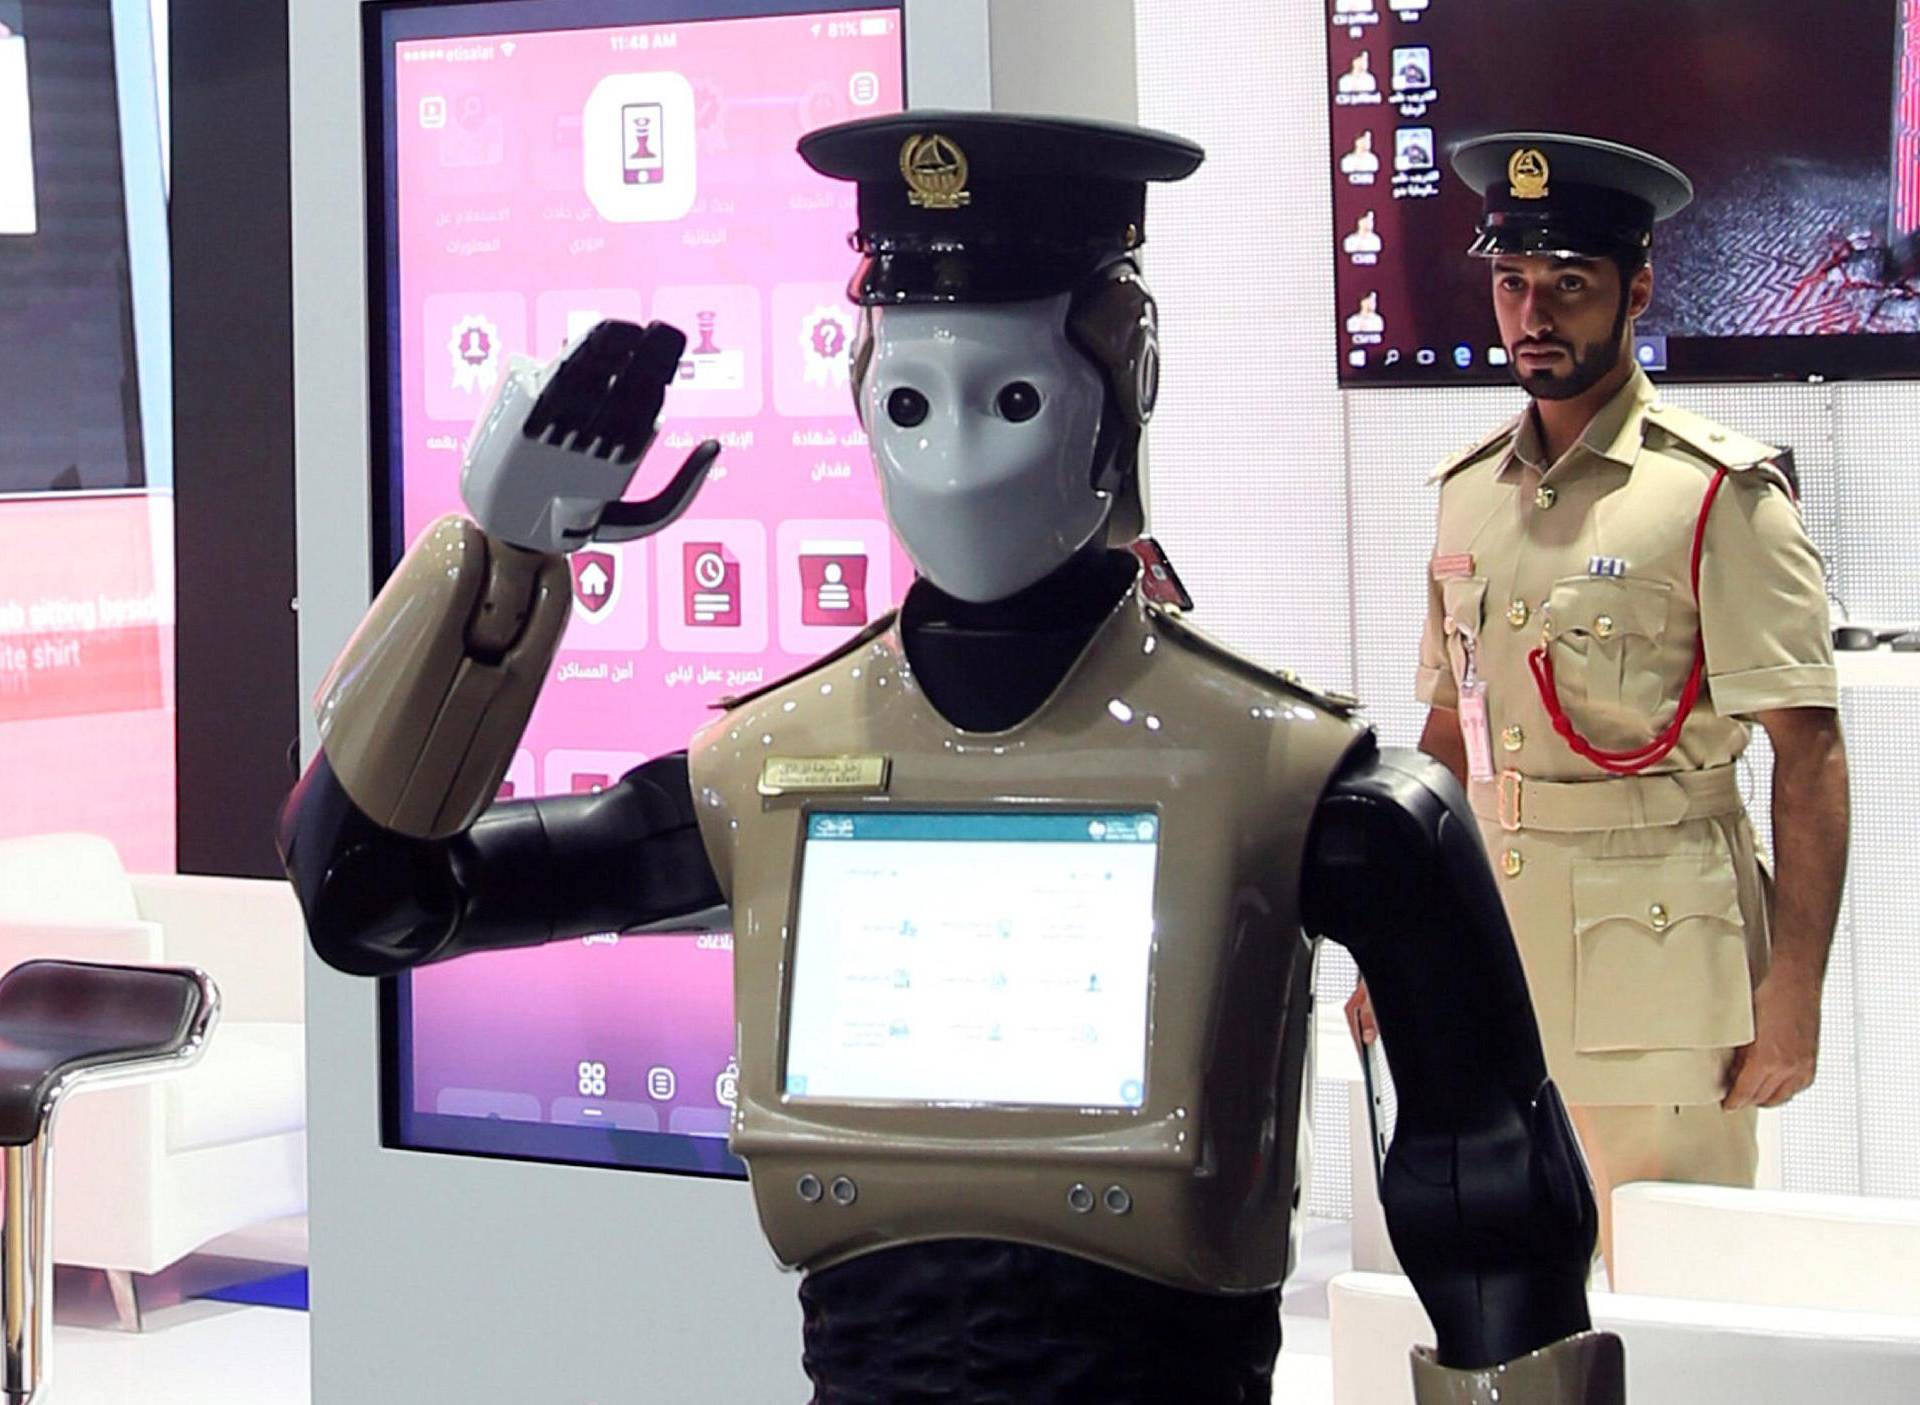 Operational robot policeman is seen at the opening of the 4th Gulf Information Security Expo and Conference (GISEC) in Dubai